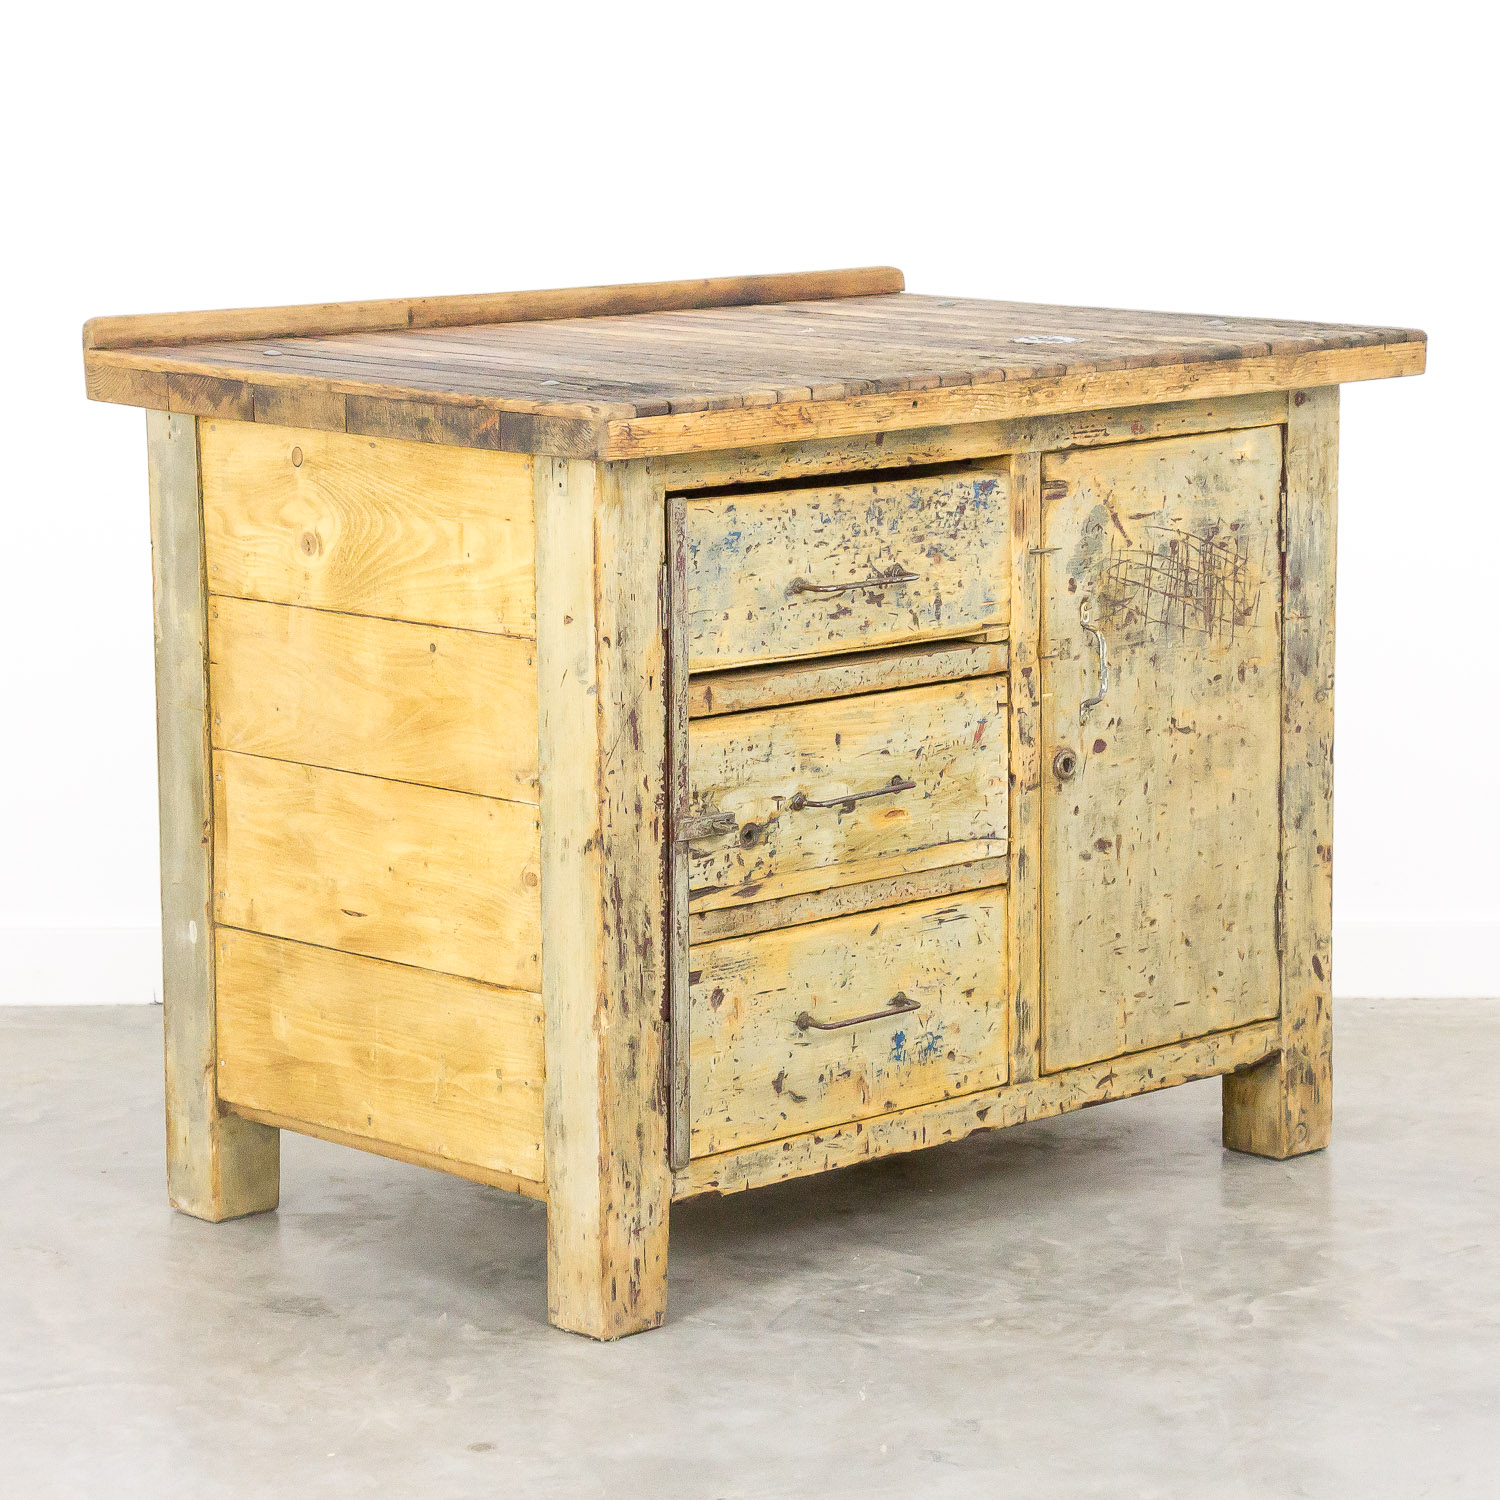 Industrial worktable patina